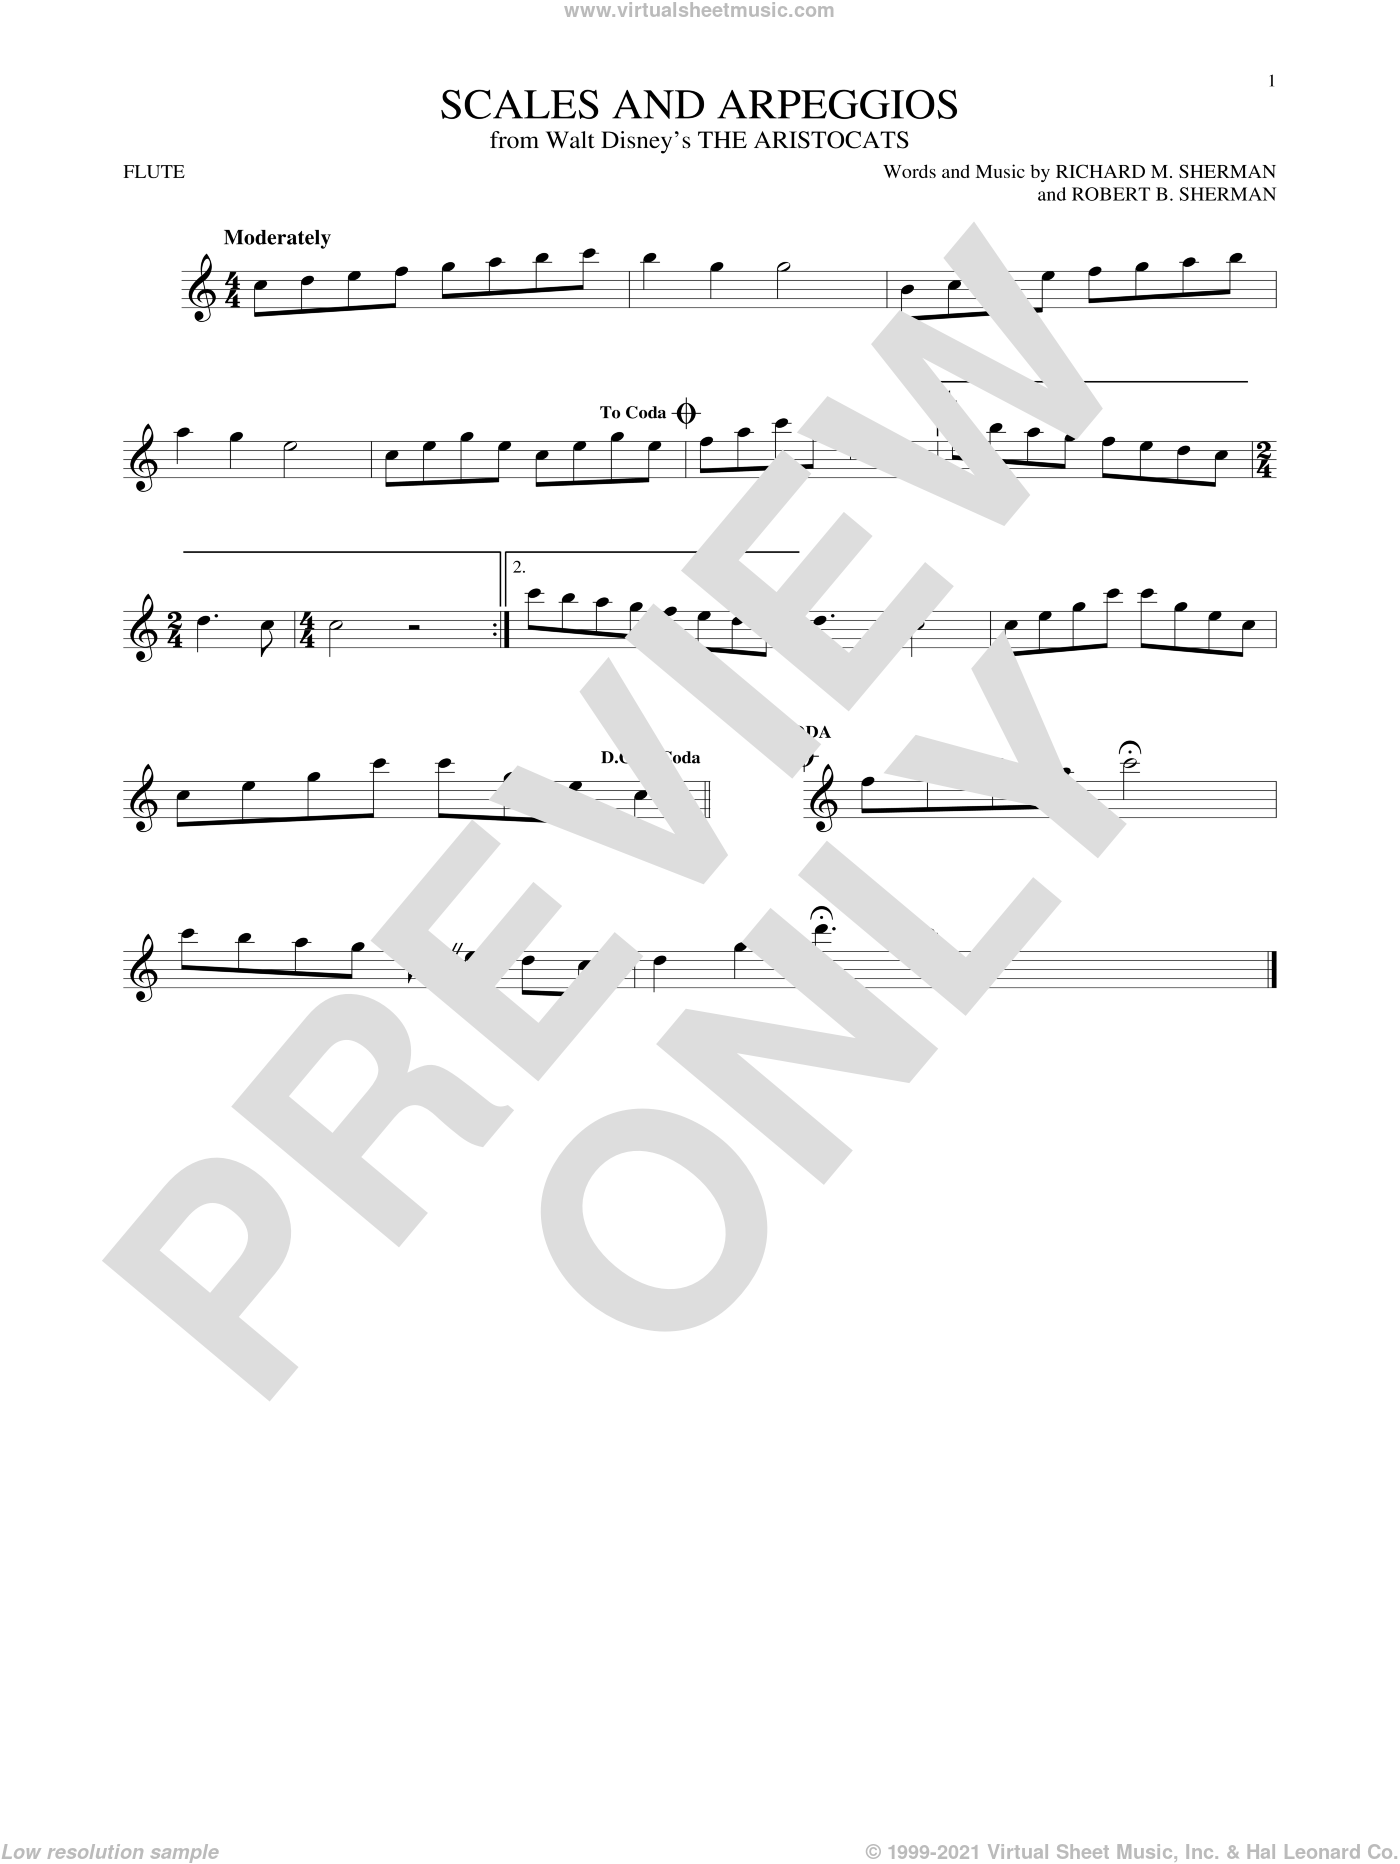 Scales And Arpeggios sheet music for flute solo by Richard M. Sherman, Richard & Robert Sherman and Robert B. Sherman, intermediate skill level